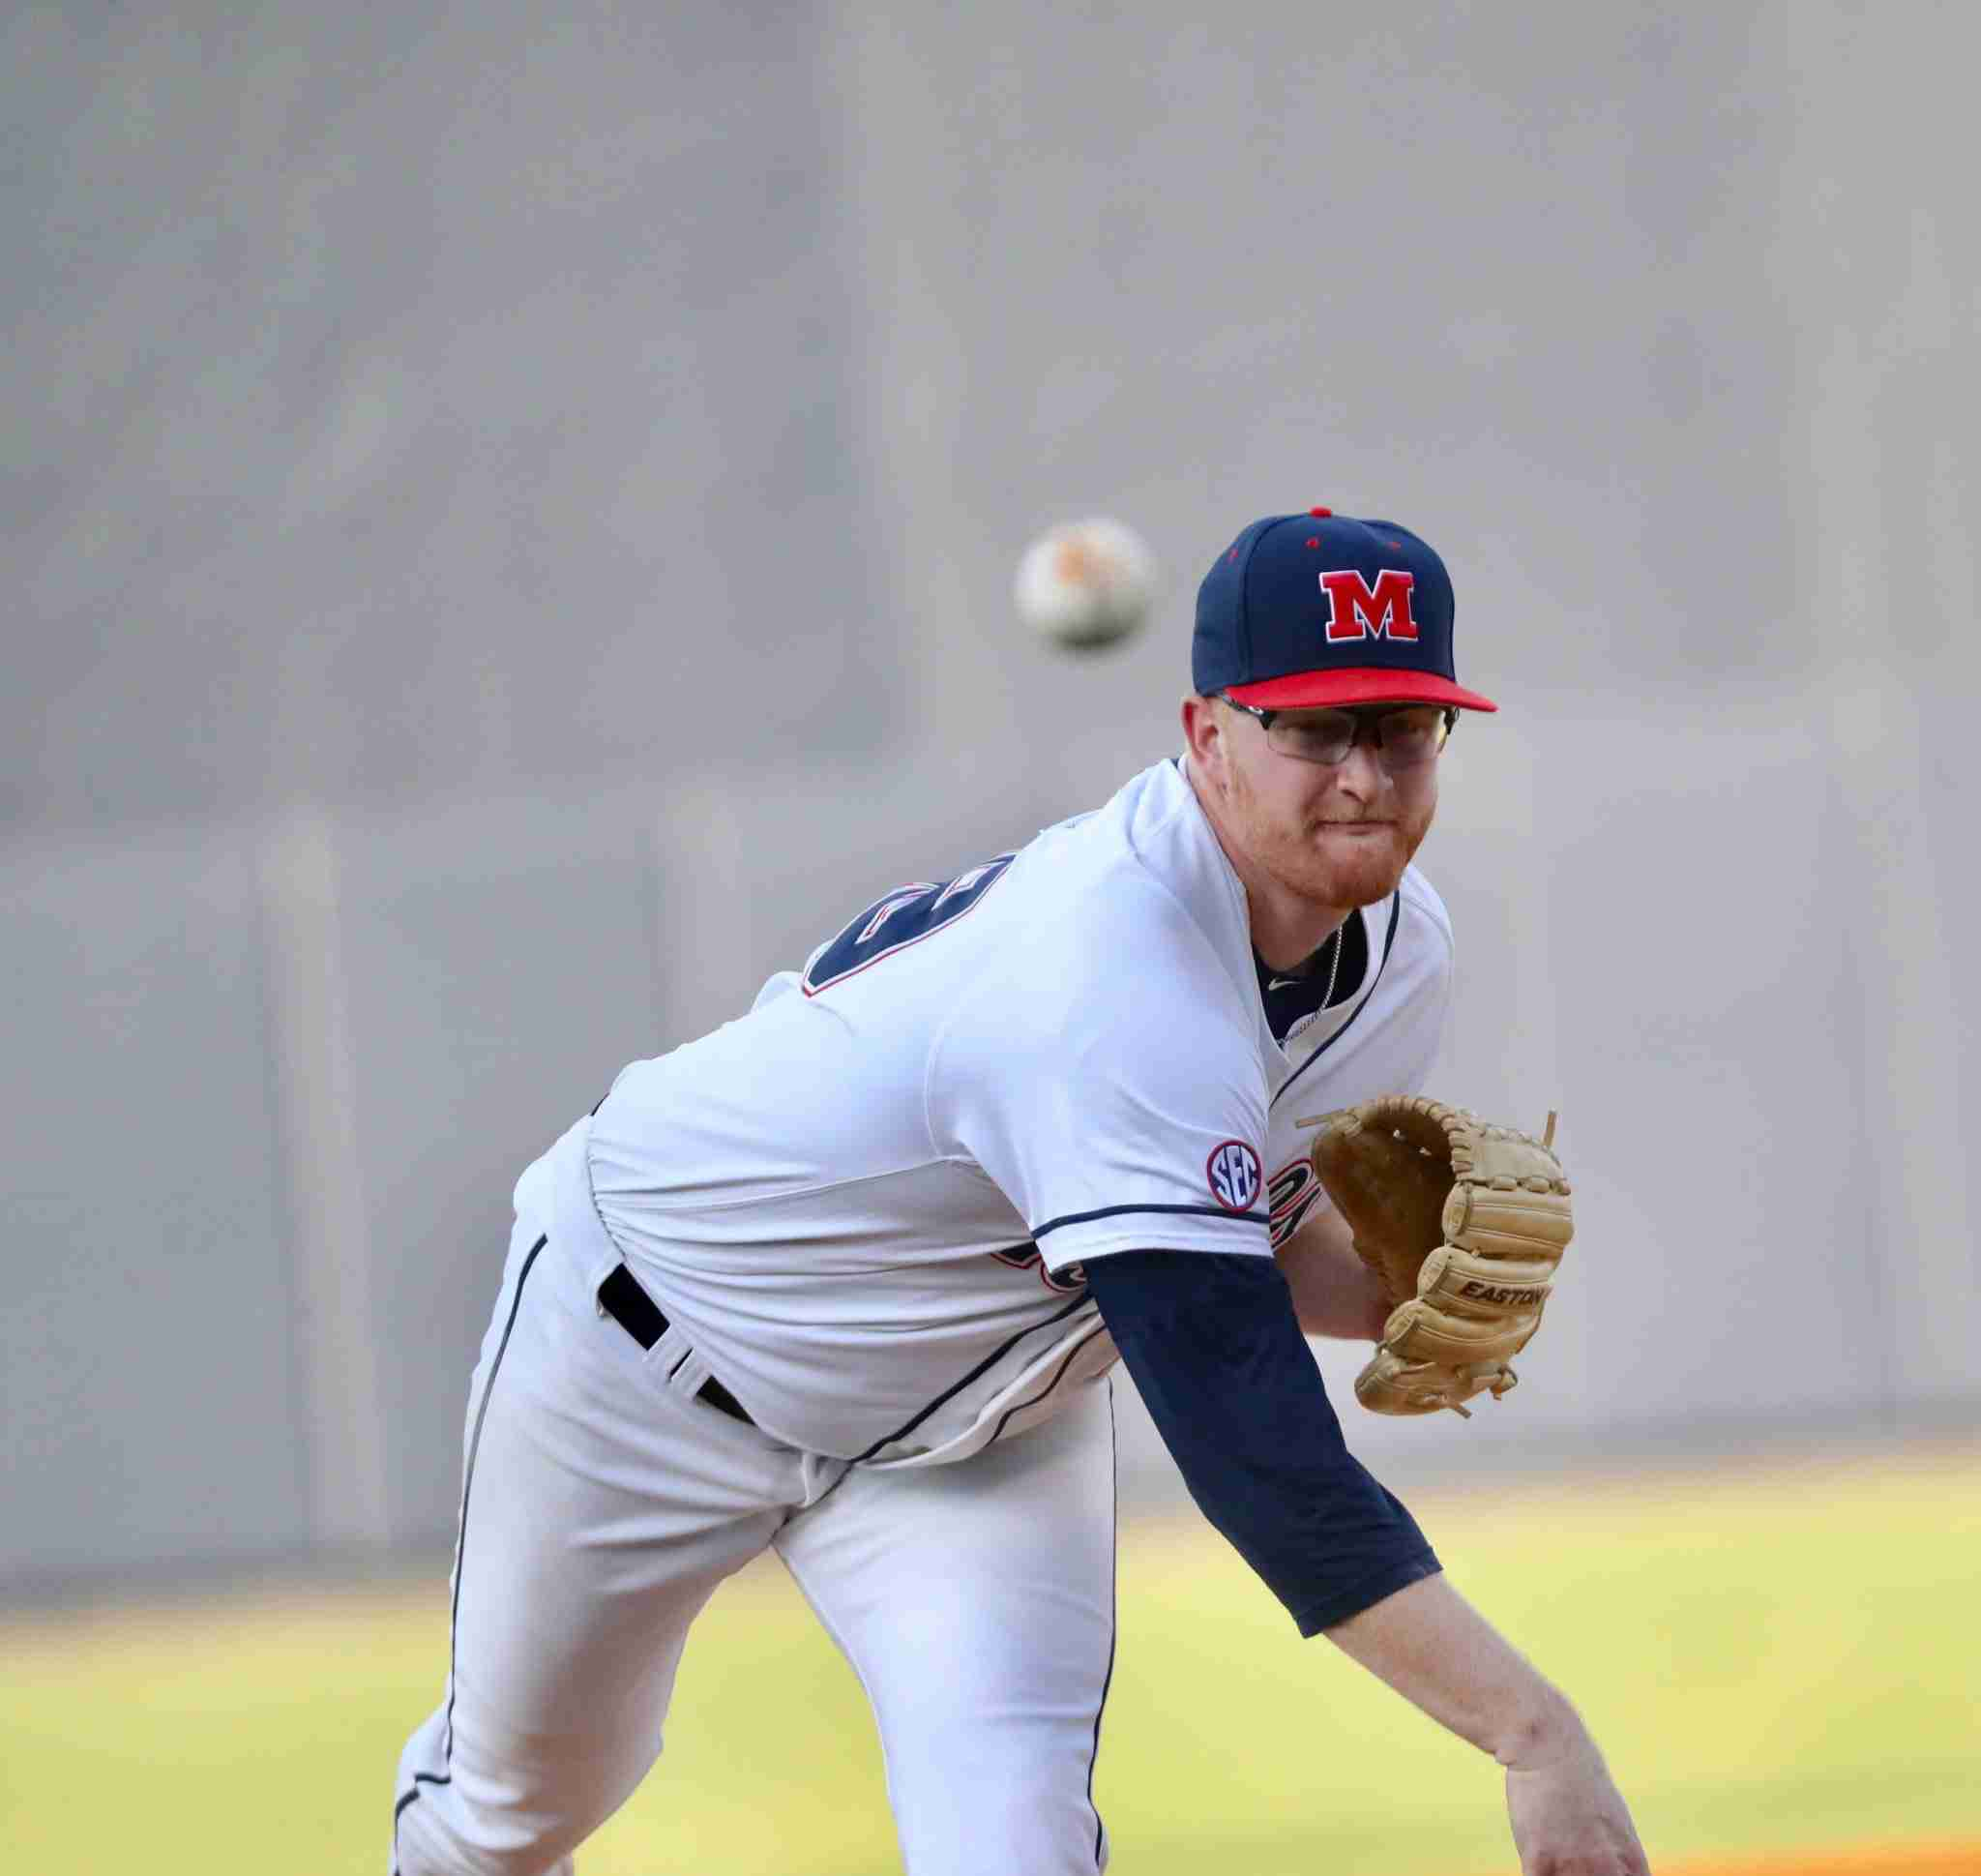 Rebels chase Mize, clinch series against Auburn